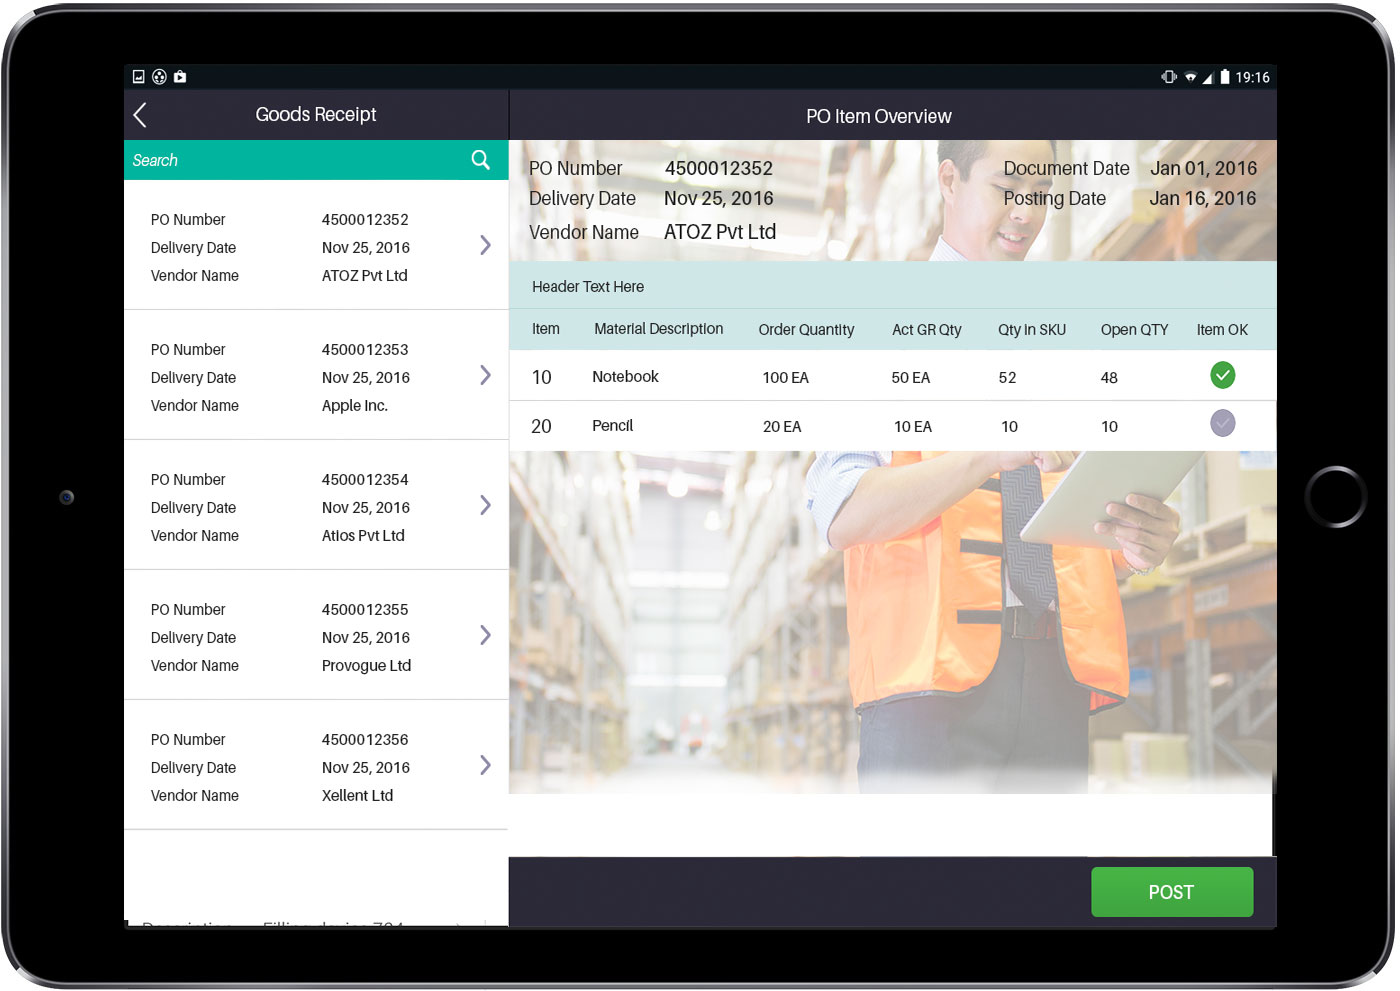 SAP Inventory Management App - Goods Receipt